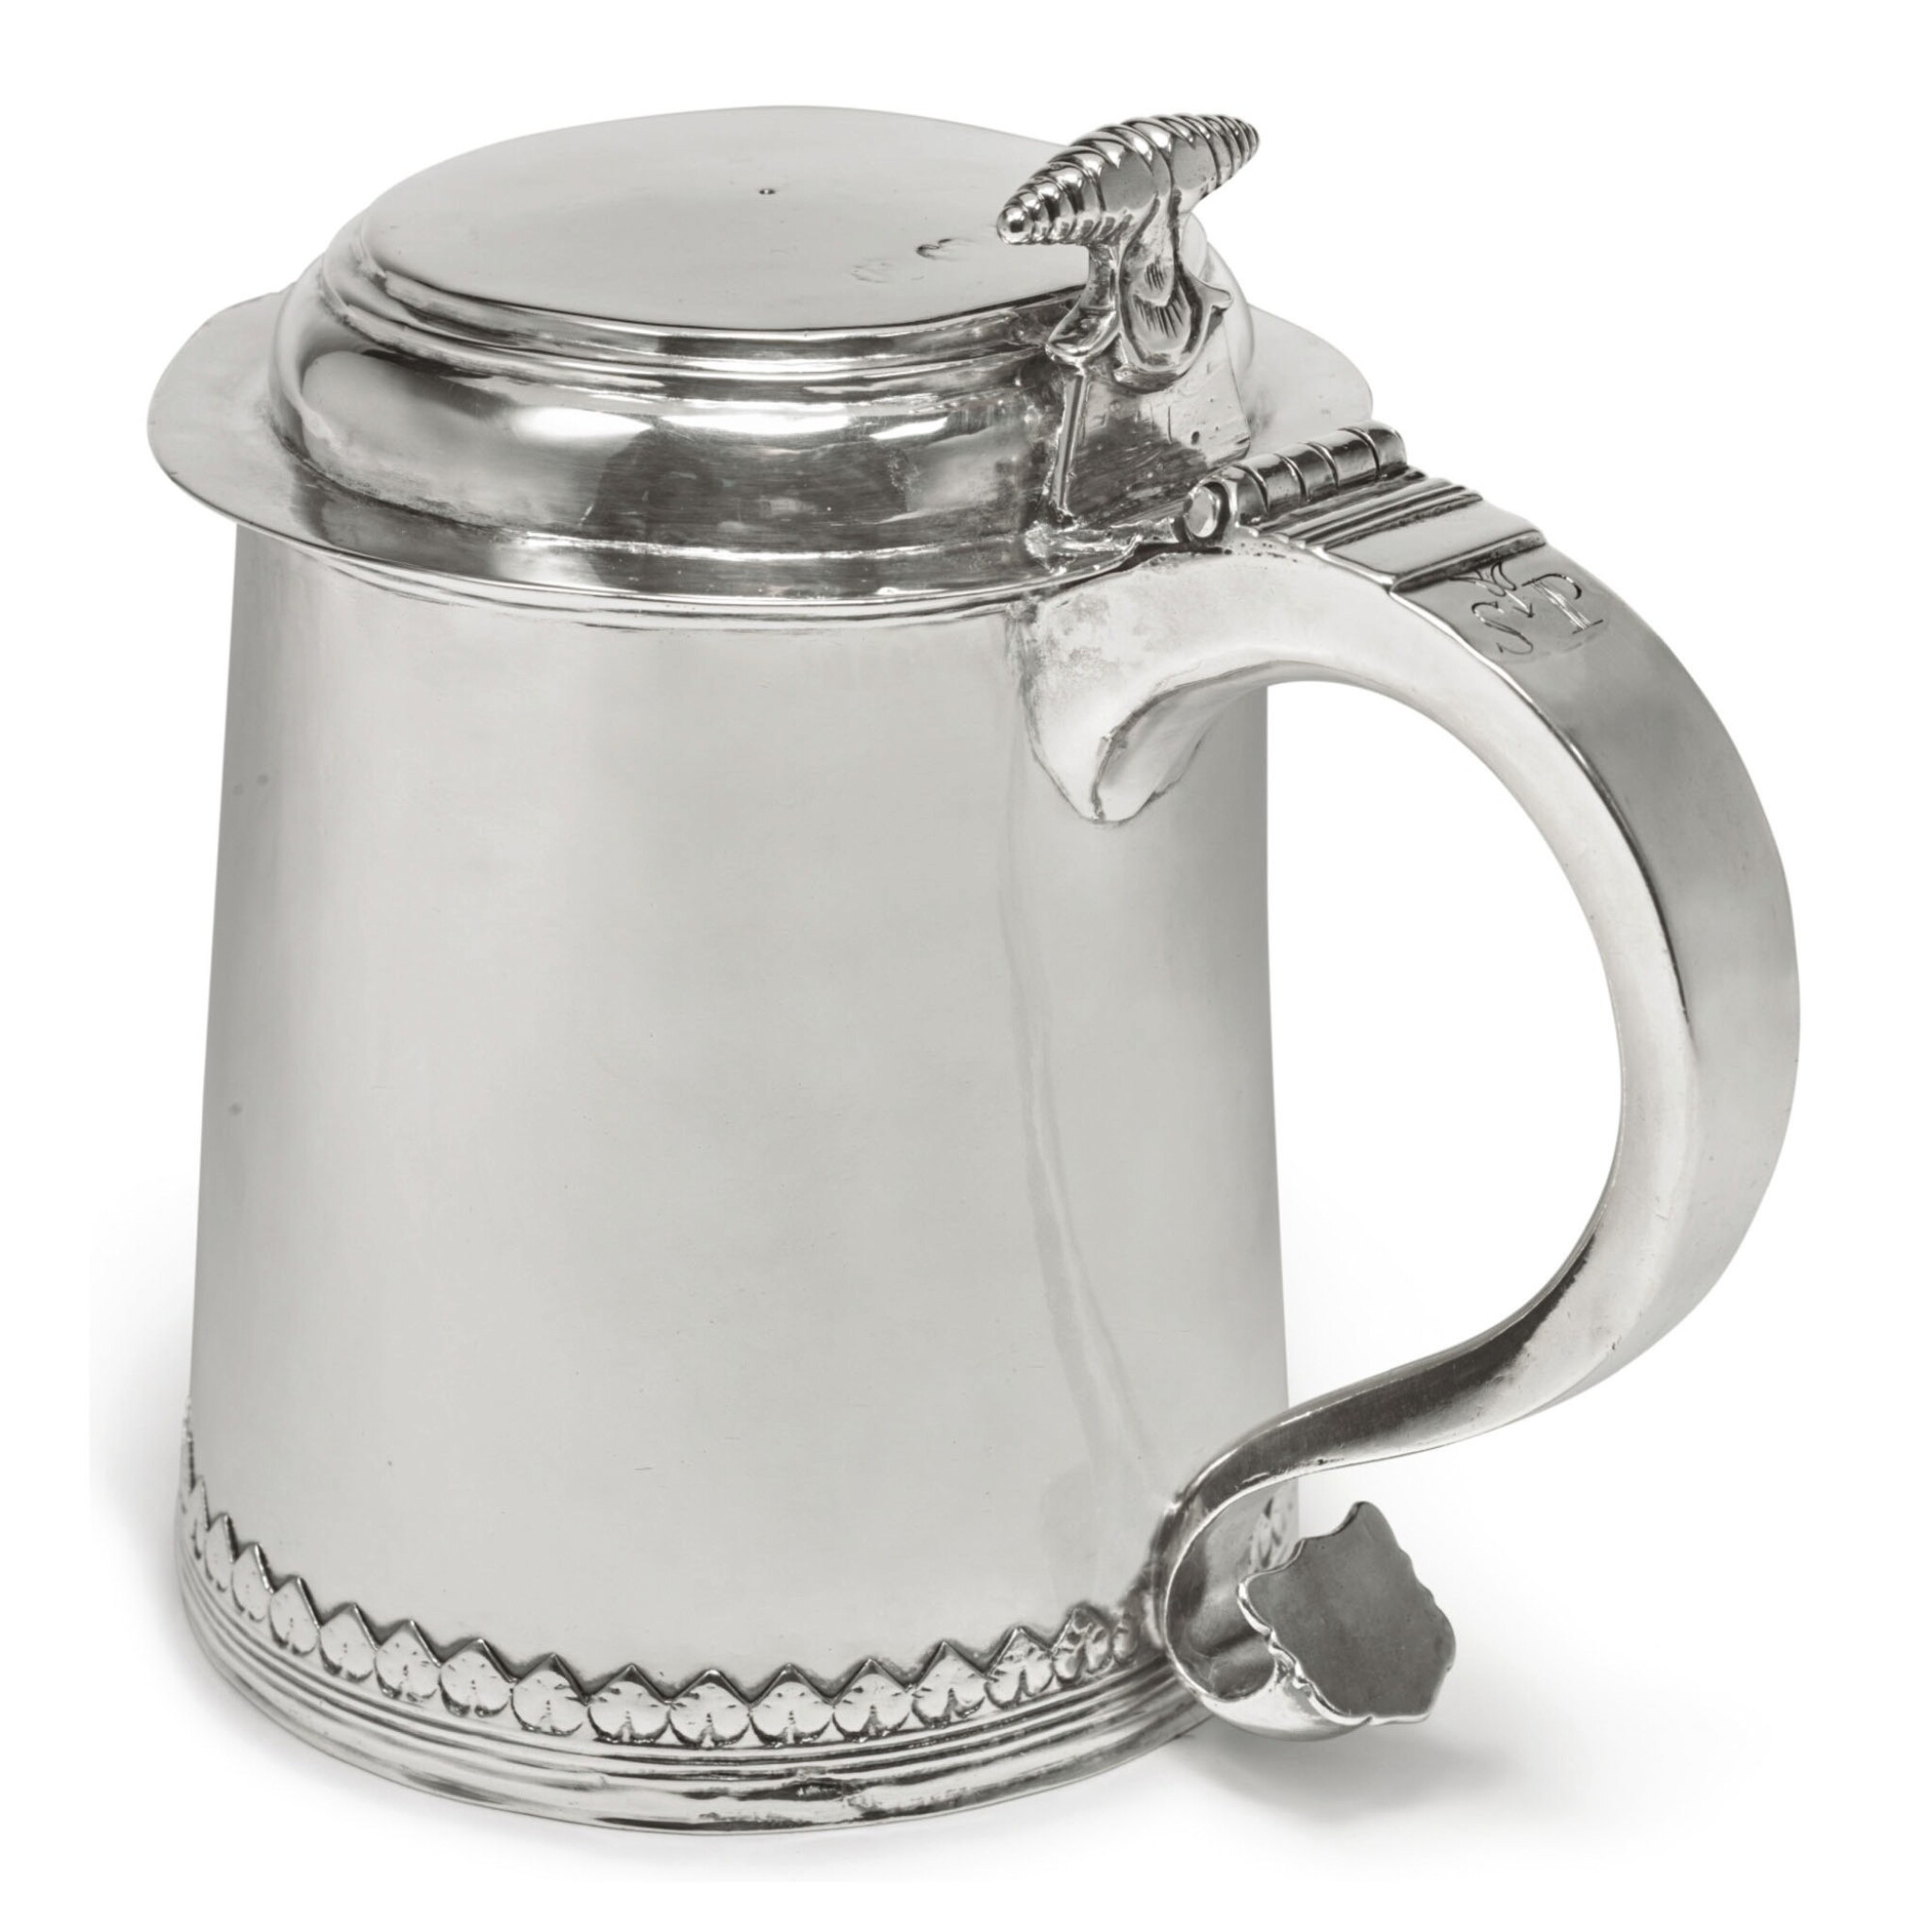 View full screen - View 1 of Lot 401. An American Silver Small Tankard, Johannis Nys, Philadelphia, dated 1716.